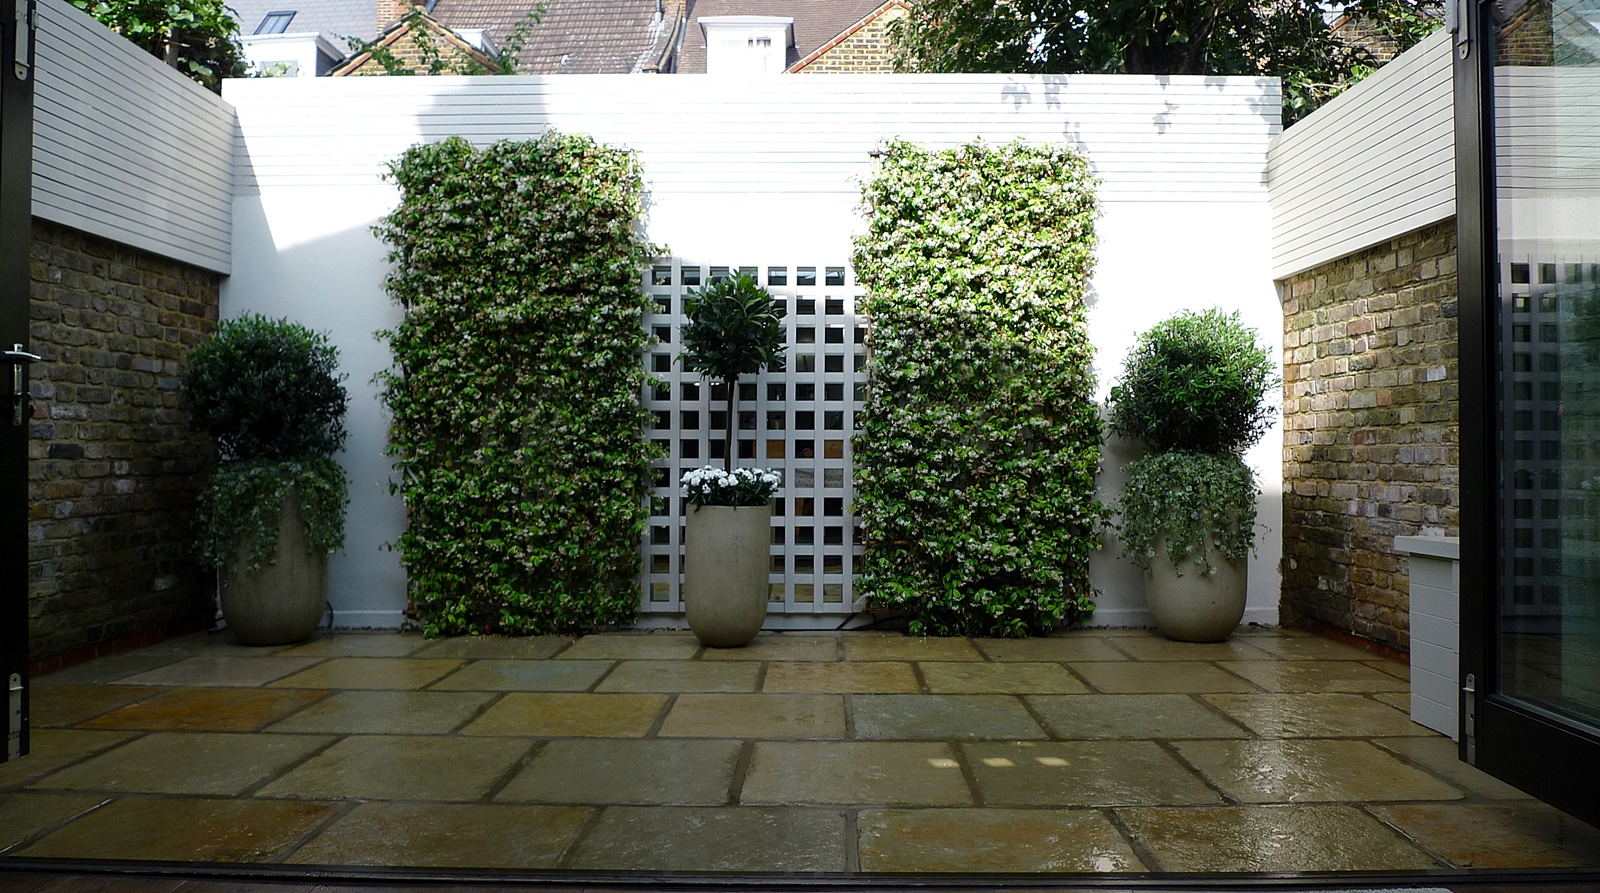 Courtyard minimalist contemporary garden design and designer westminster london